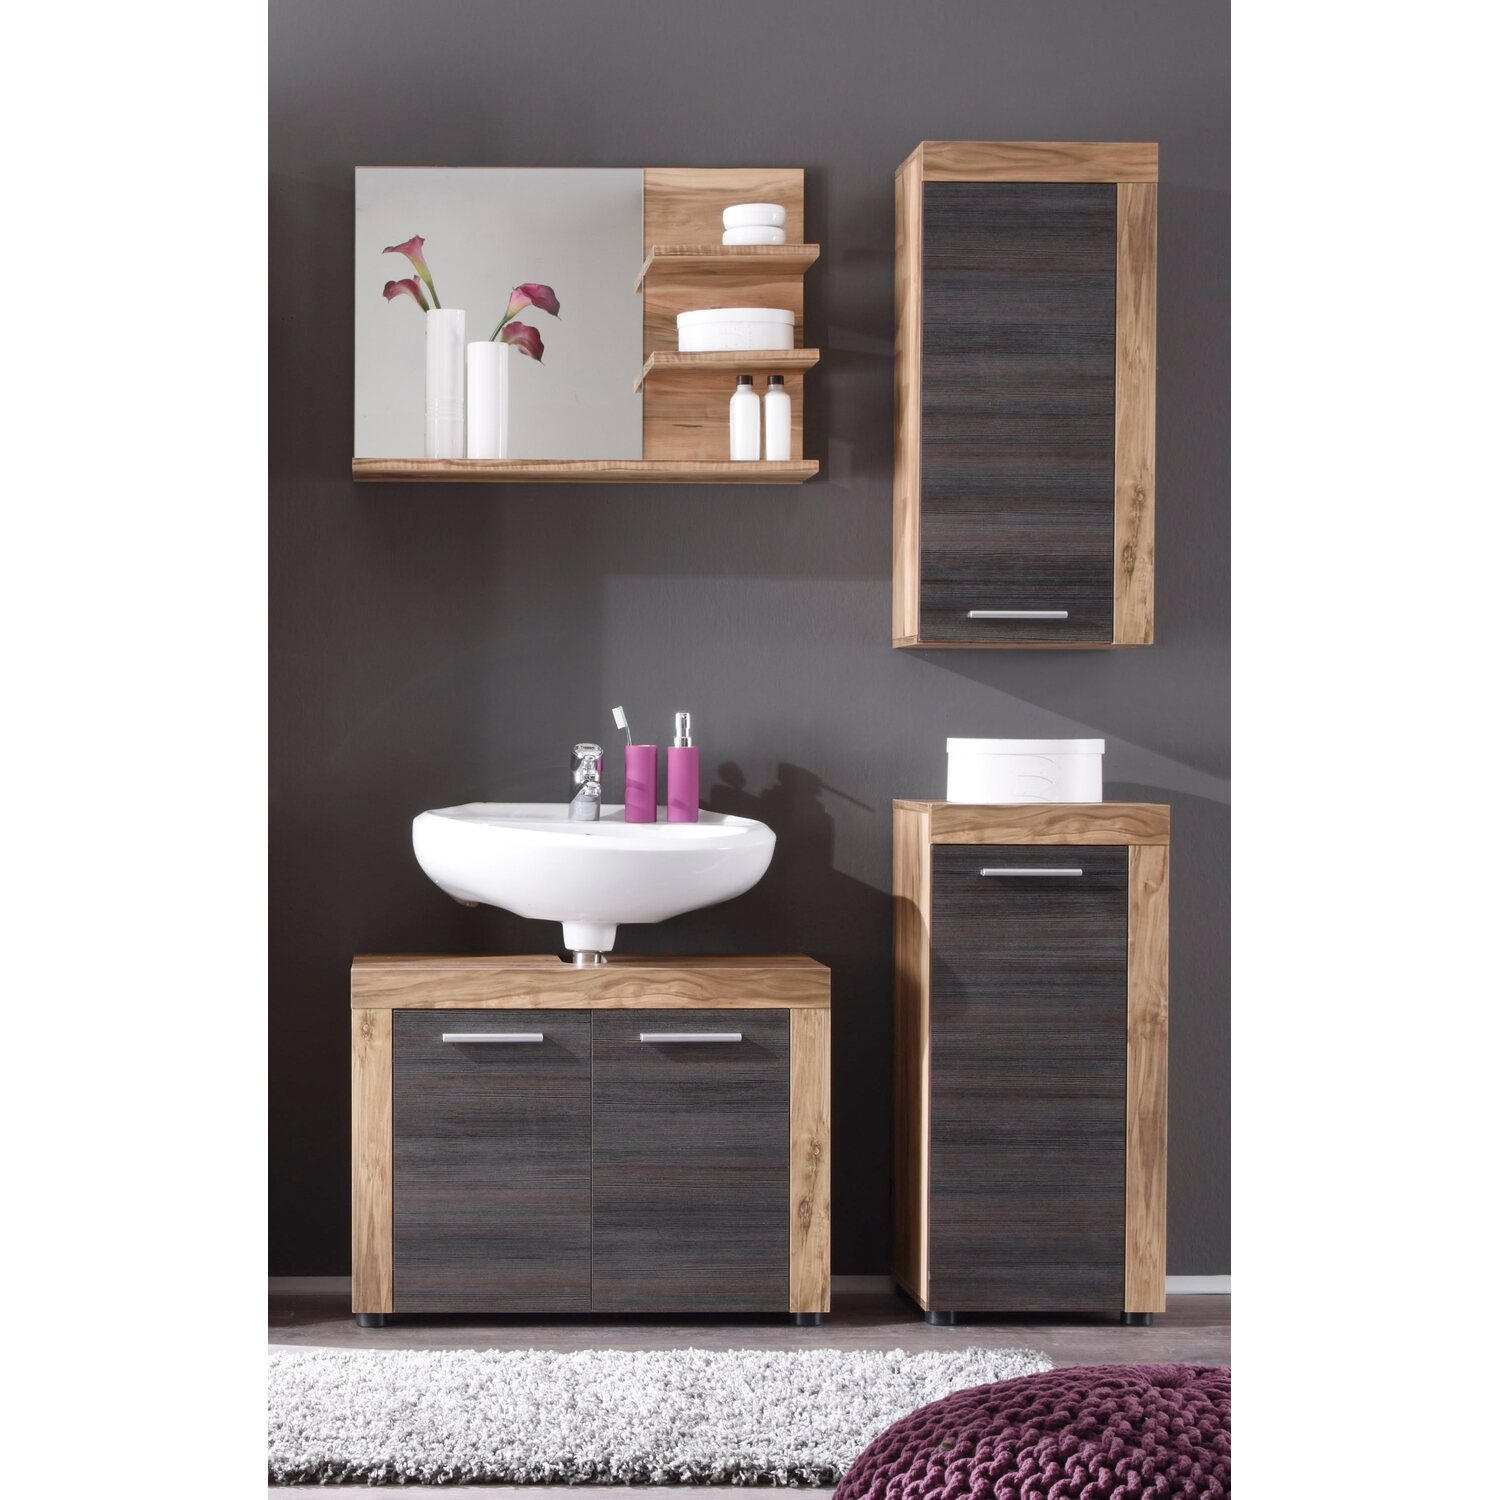 h ngeschrank cancun boom dunkelbraun nussbaum. Black Bedroom Furniture Sets. Home Design Ideas